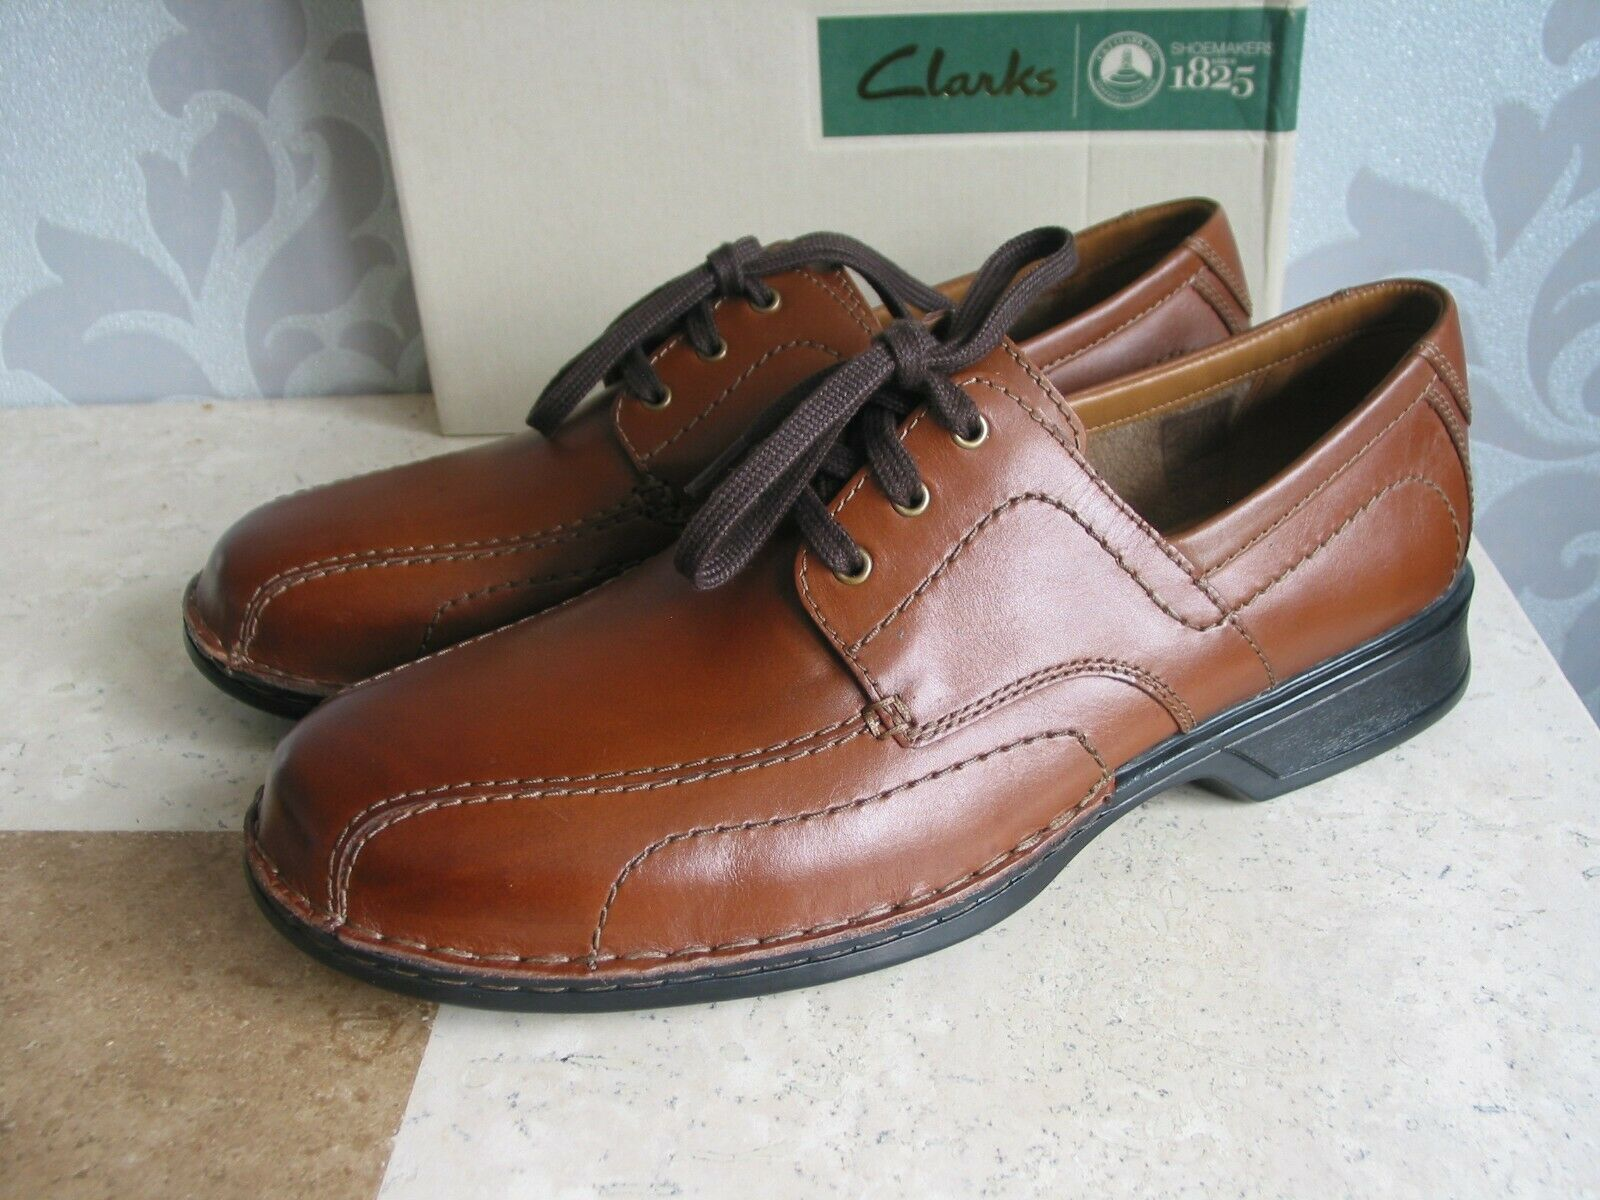 NEW CLARKS CUSHION SOFT NORTHERN EDGE TAN LEATHER SHOES UK SIZE 12